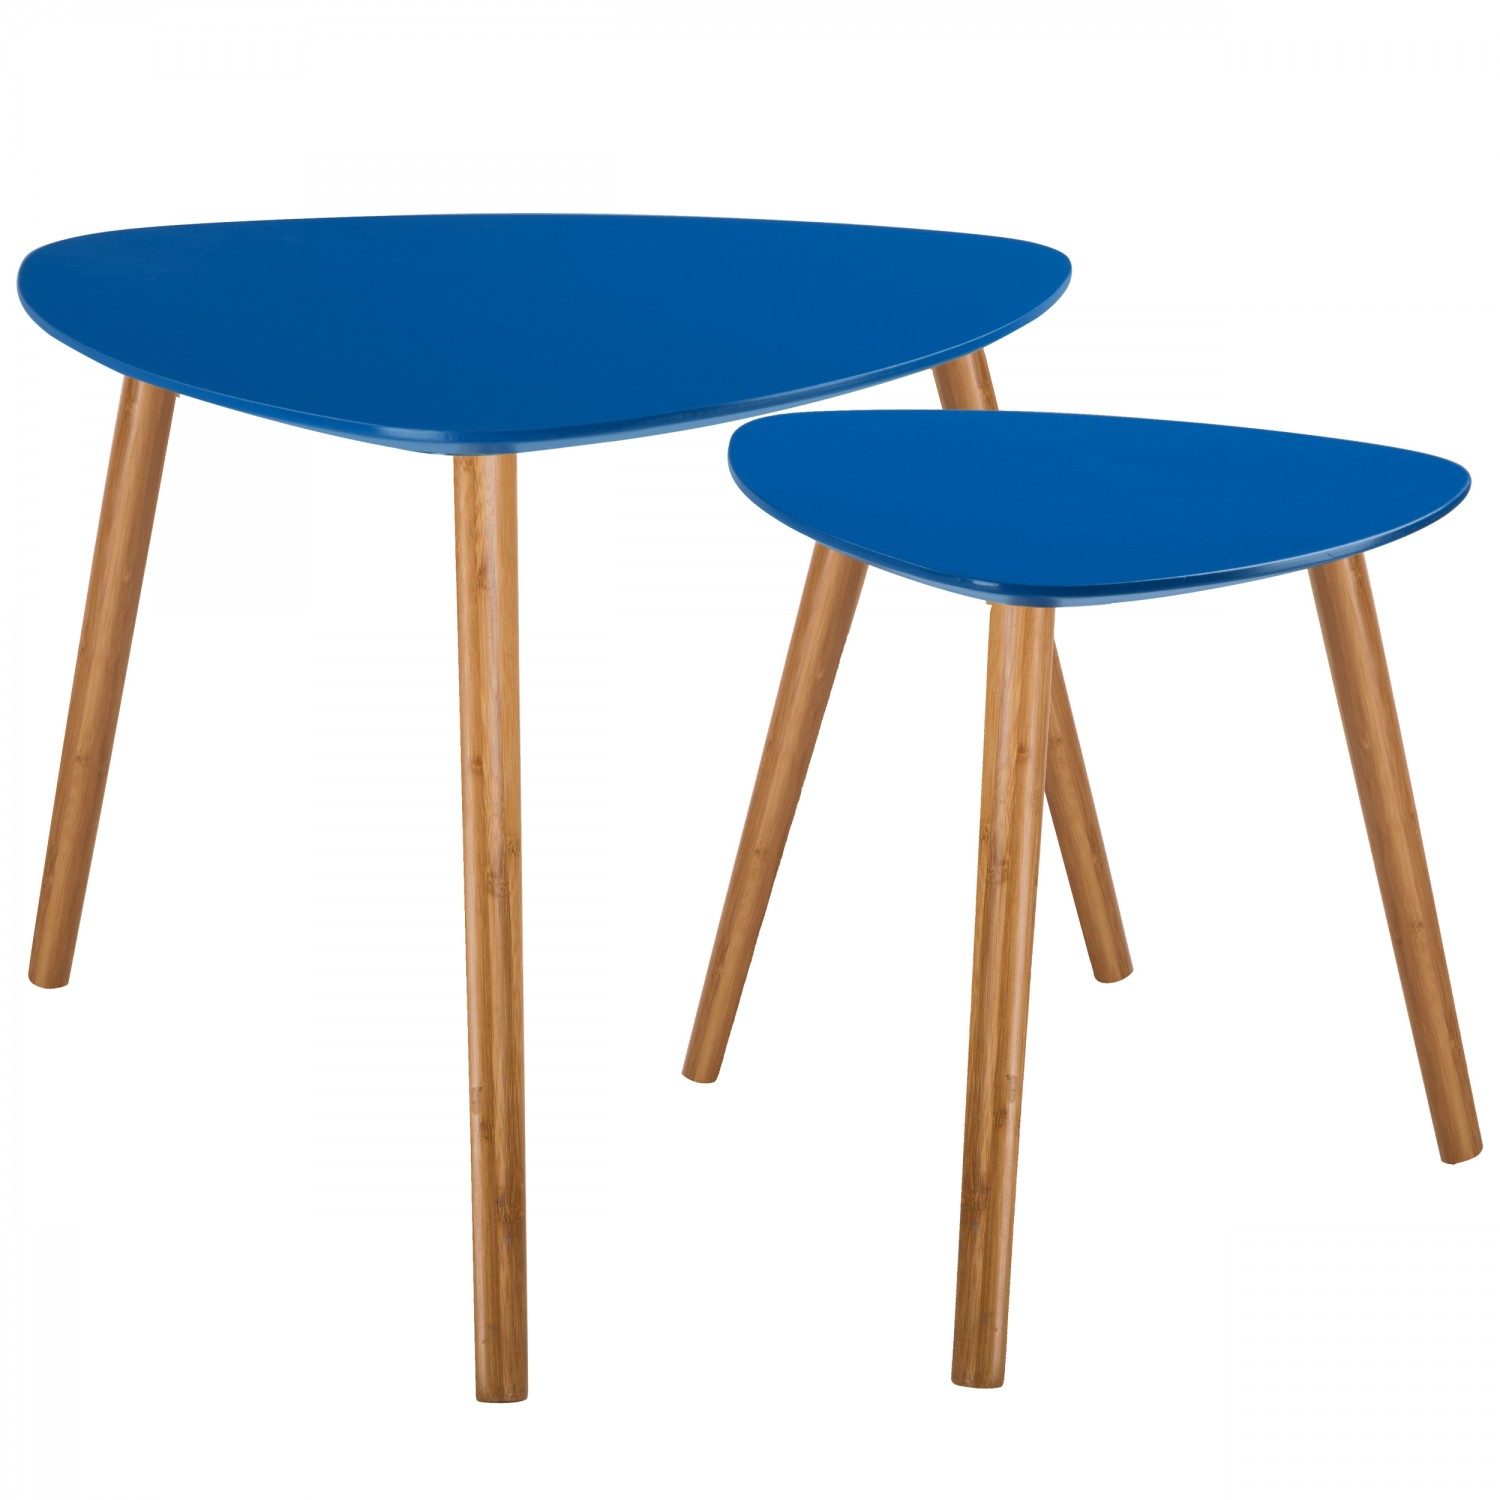 tables basses gigognes en bois bleu fonc lot de 2. Black Bedroom Furniture Sets. Home Design Ideas